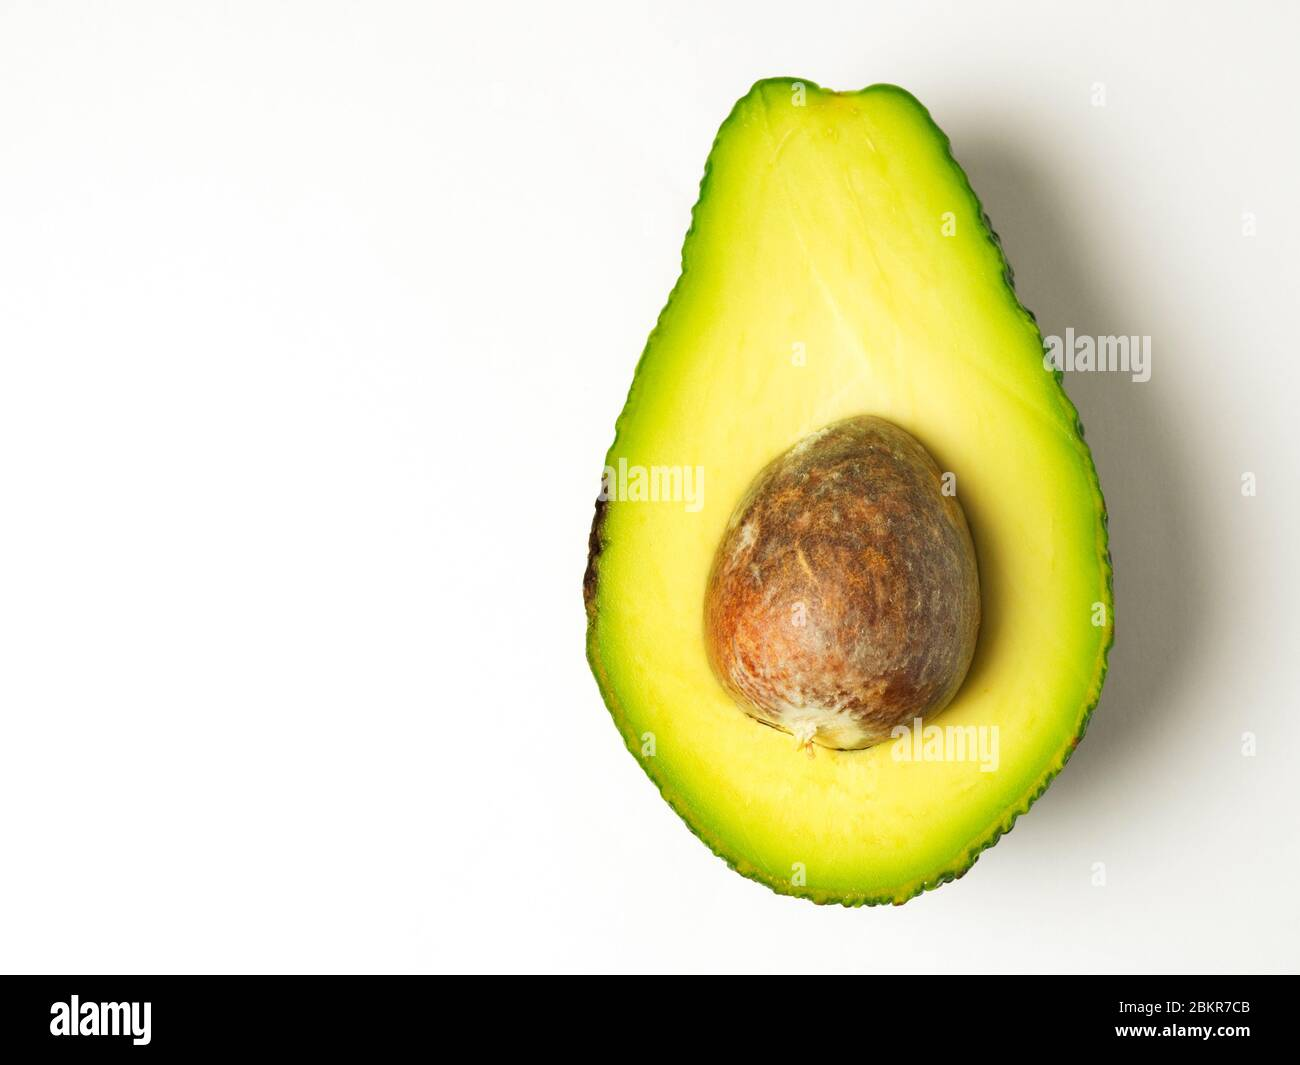 Half an avocado with the stone left in on a white background Stock Photo